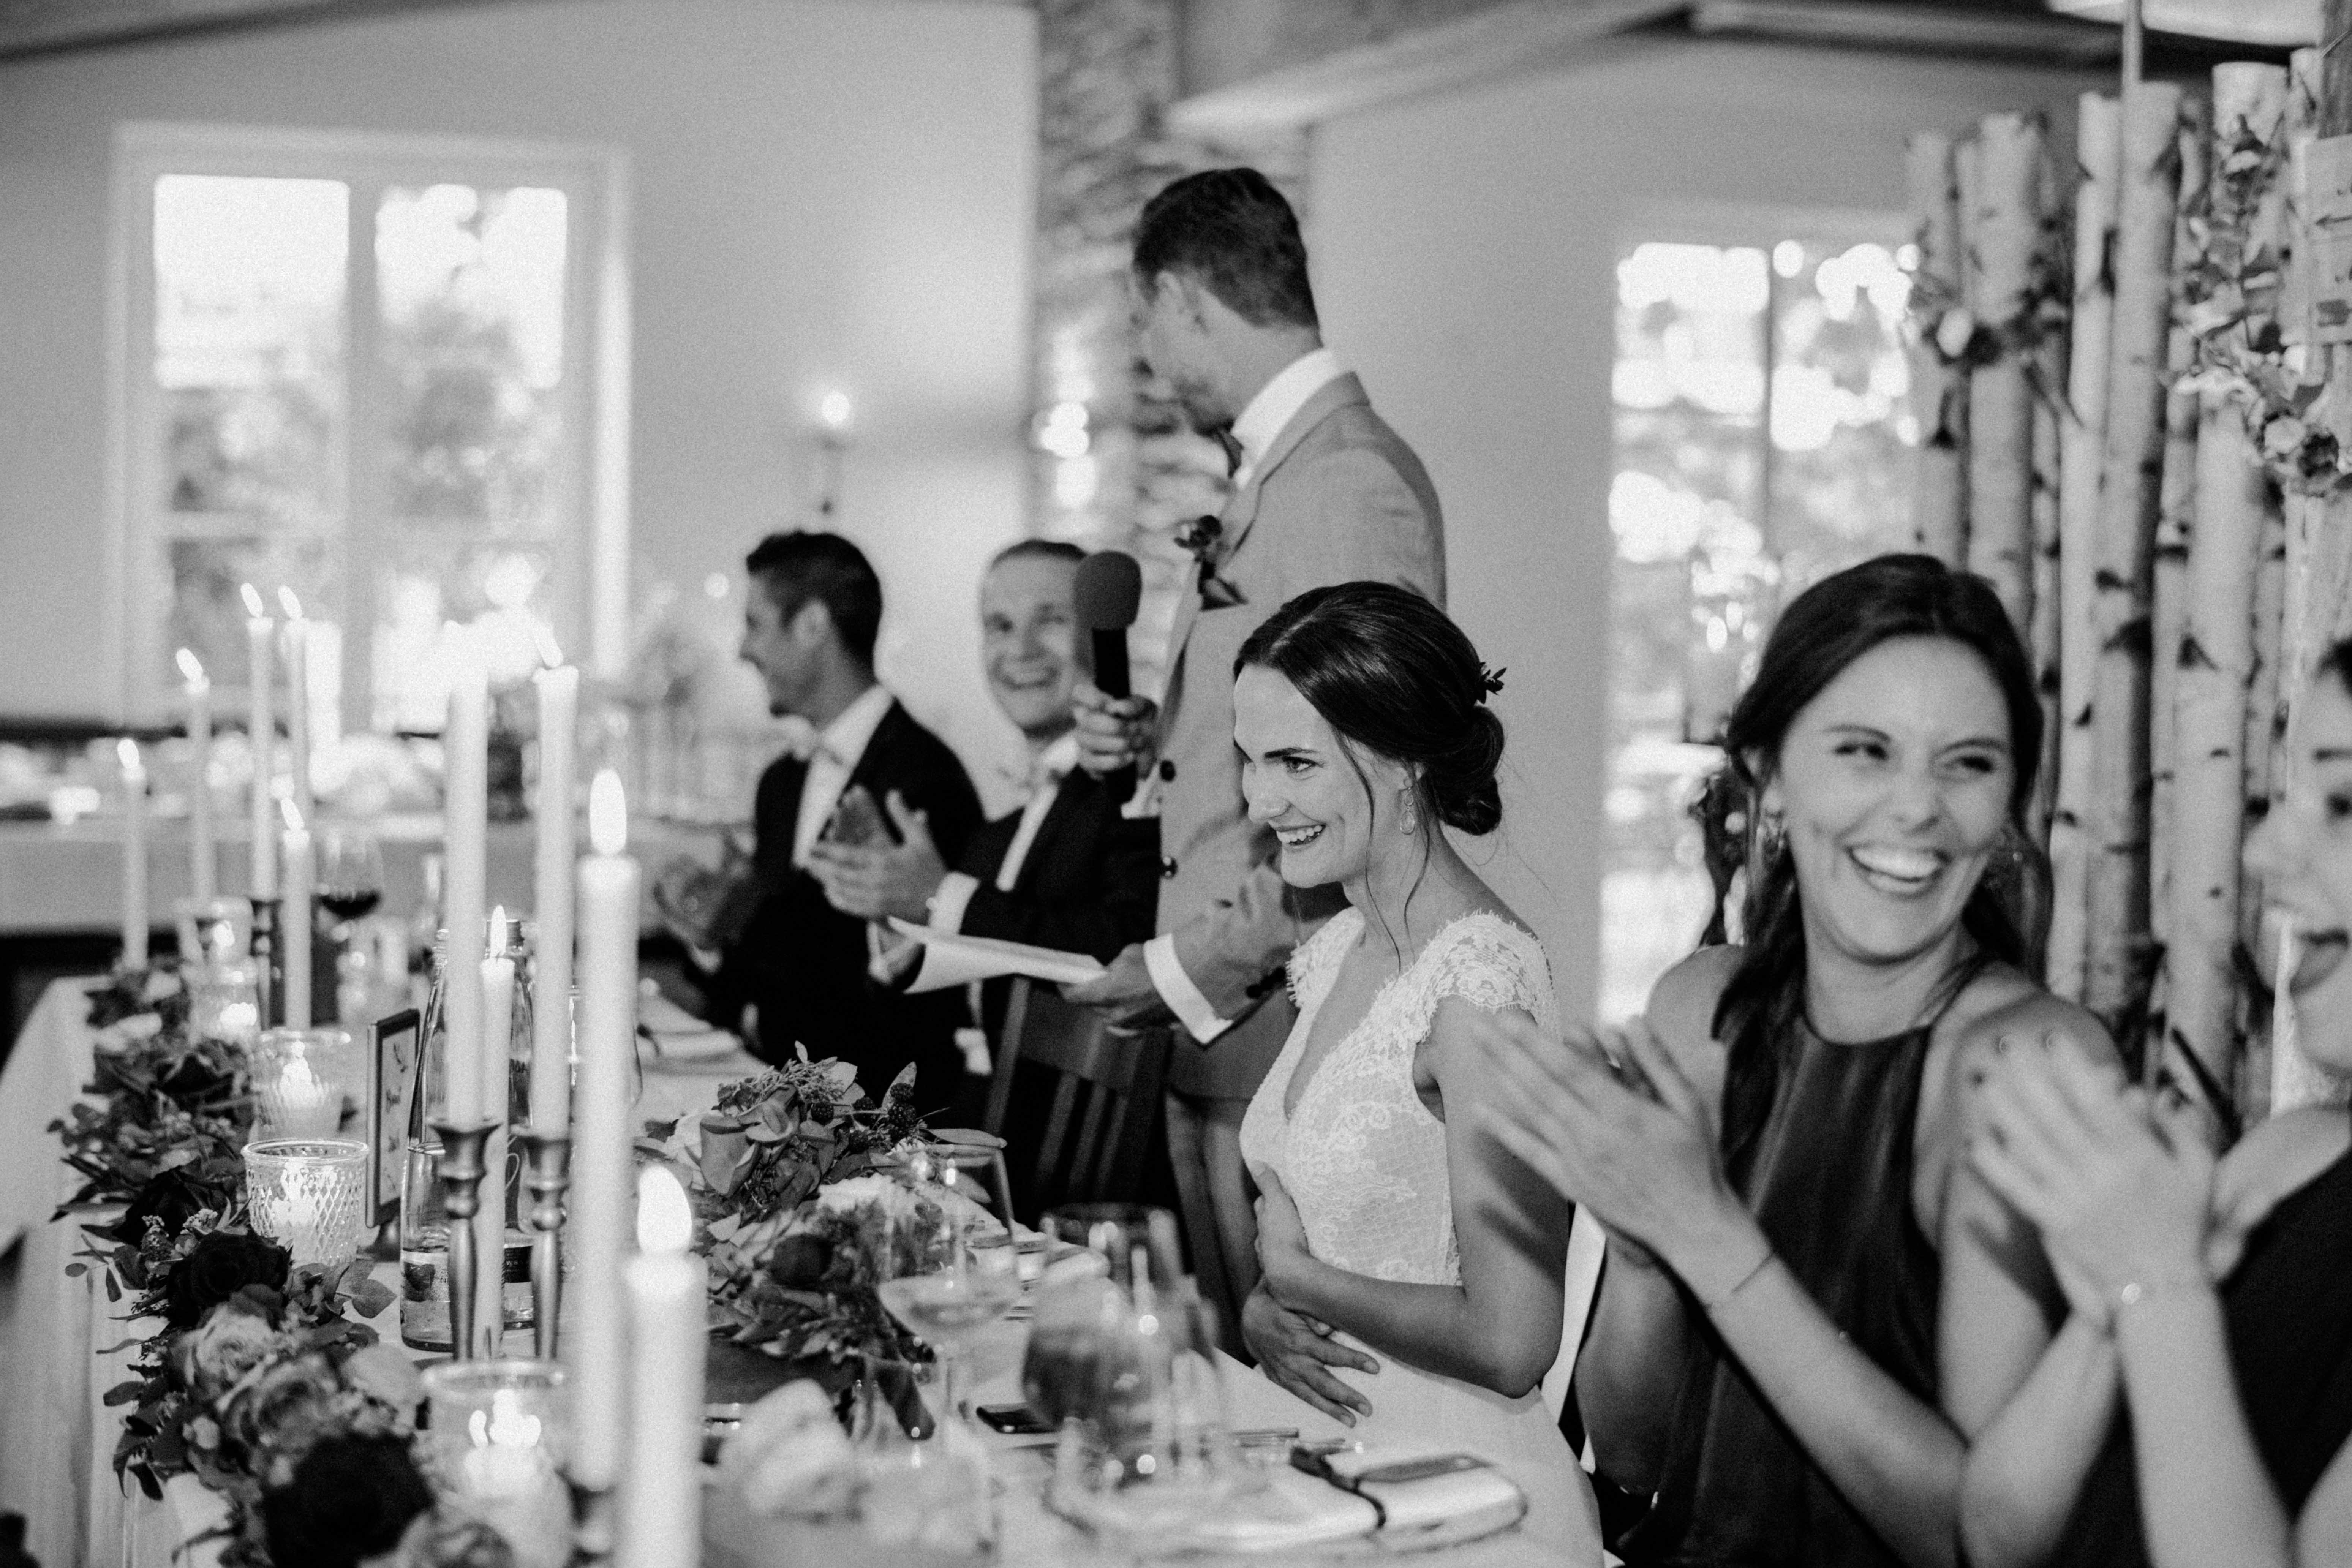 happy faces sonja poehlmann photography wedding muenchen bayern